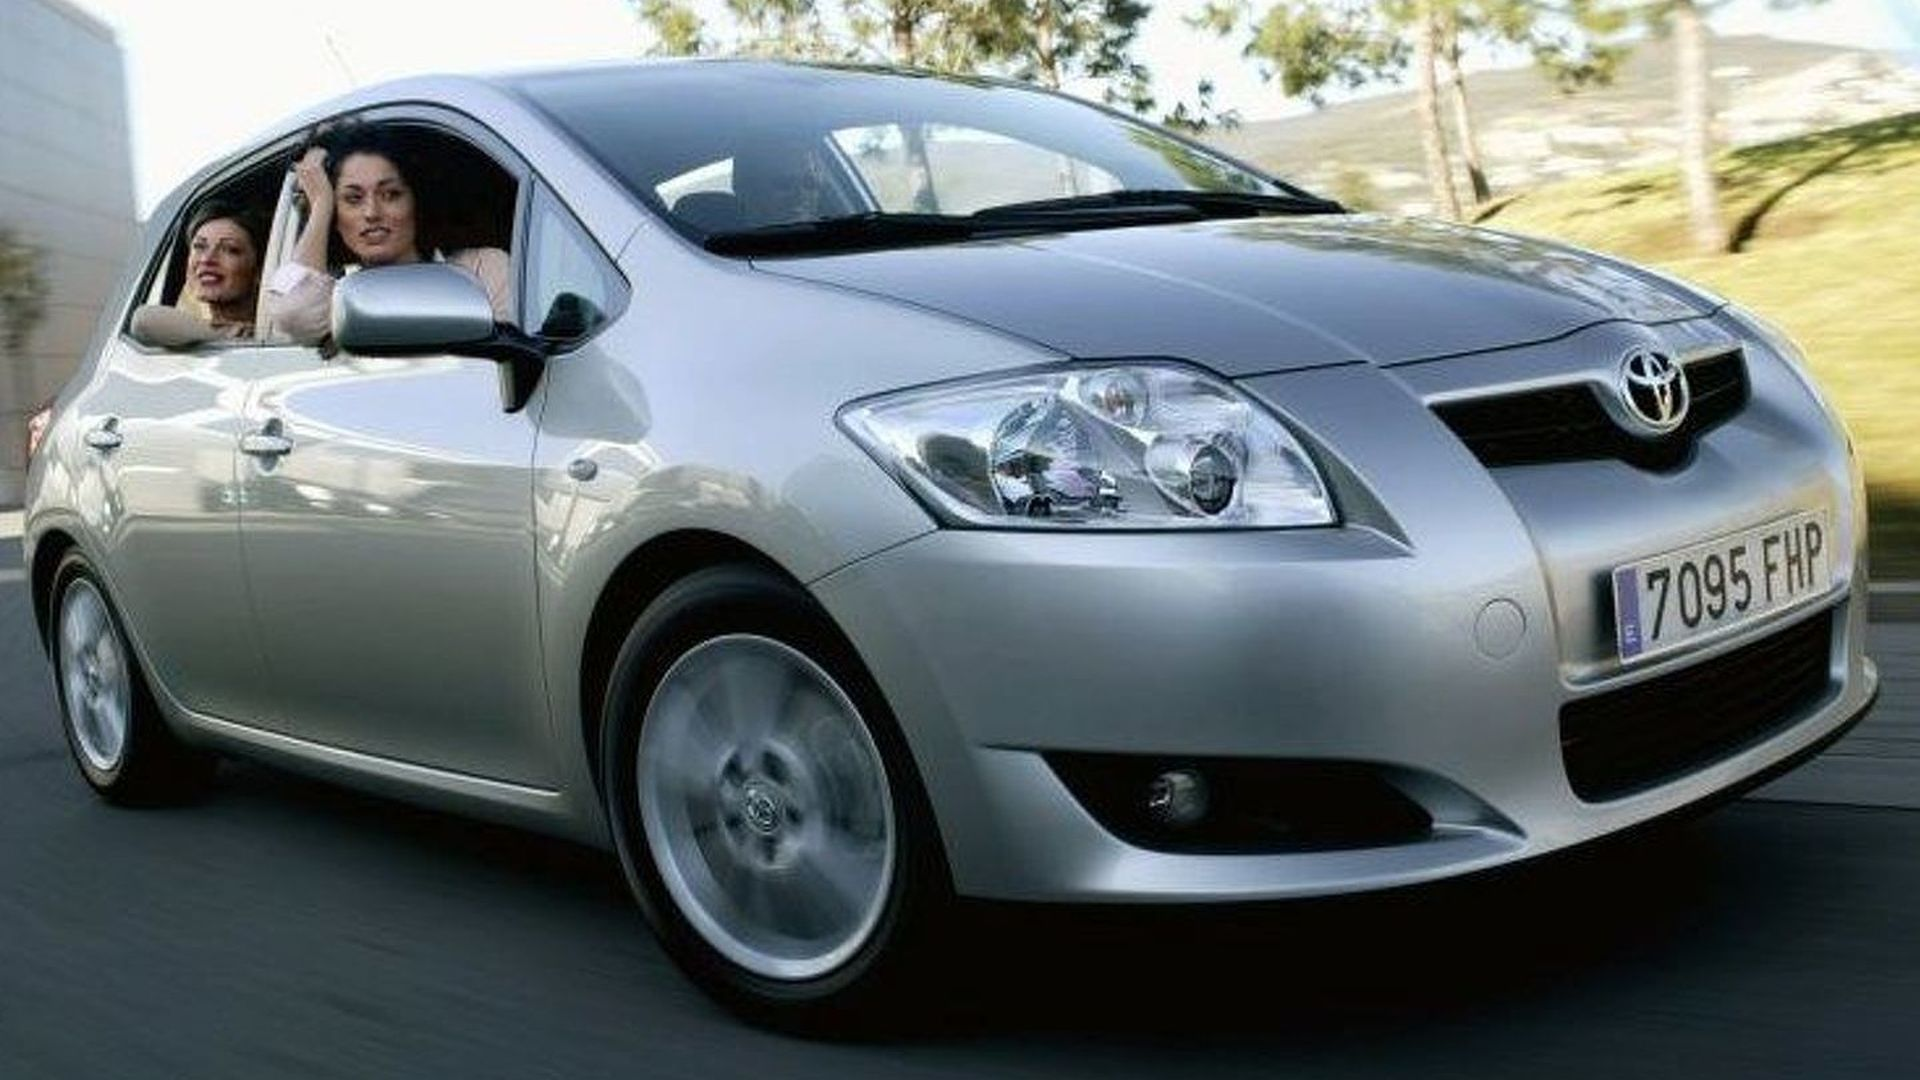 Rumour Mill: Toyota Corolla V6 for US?